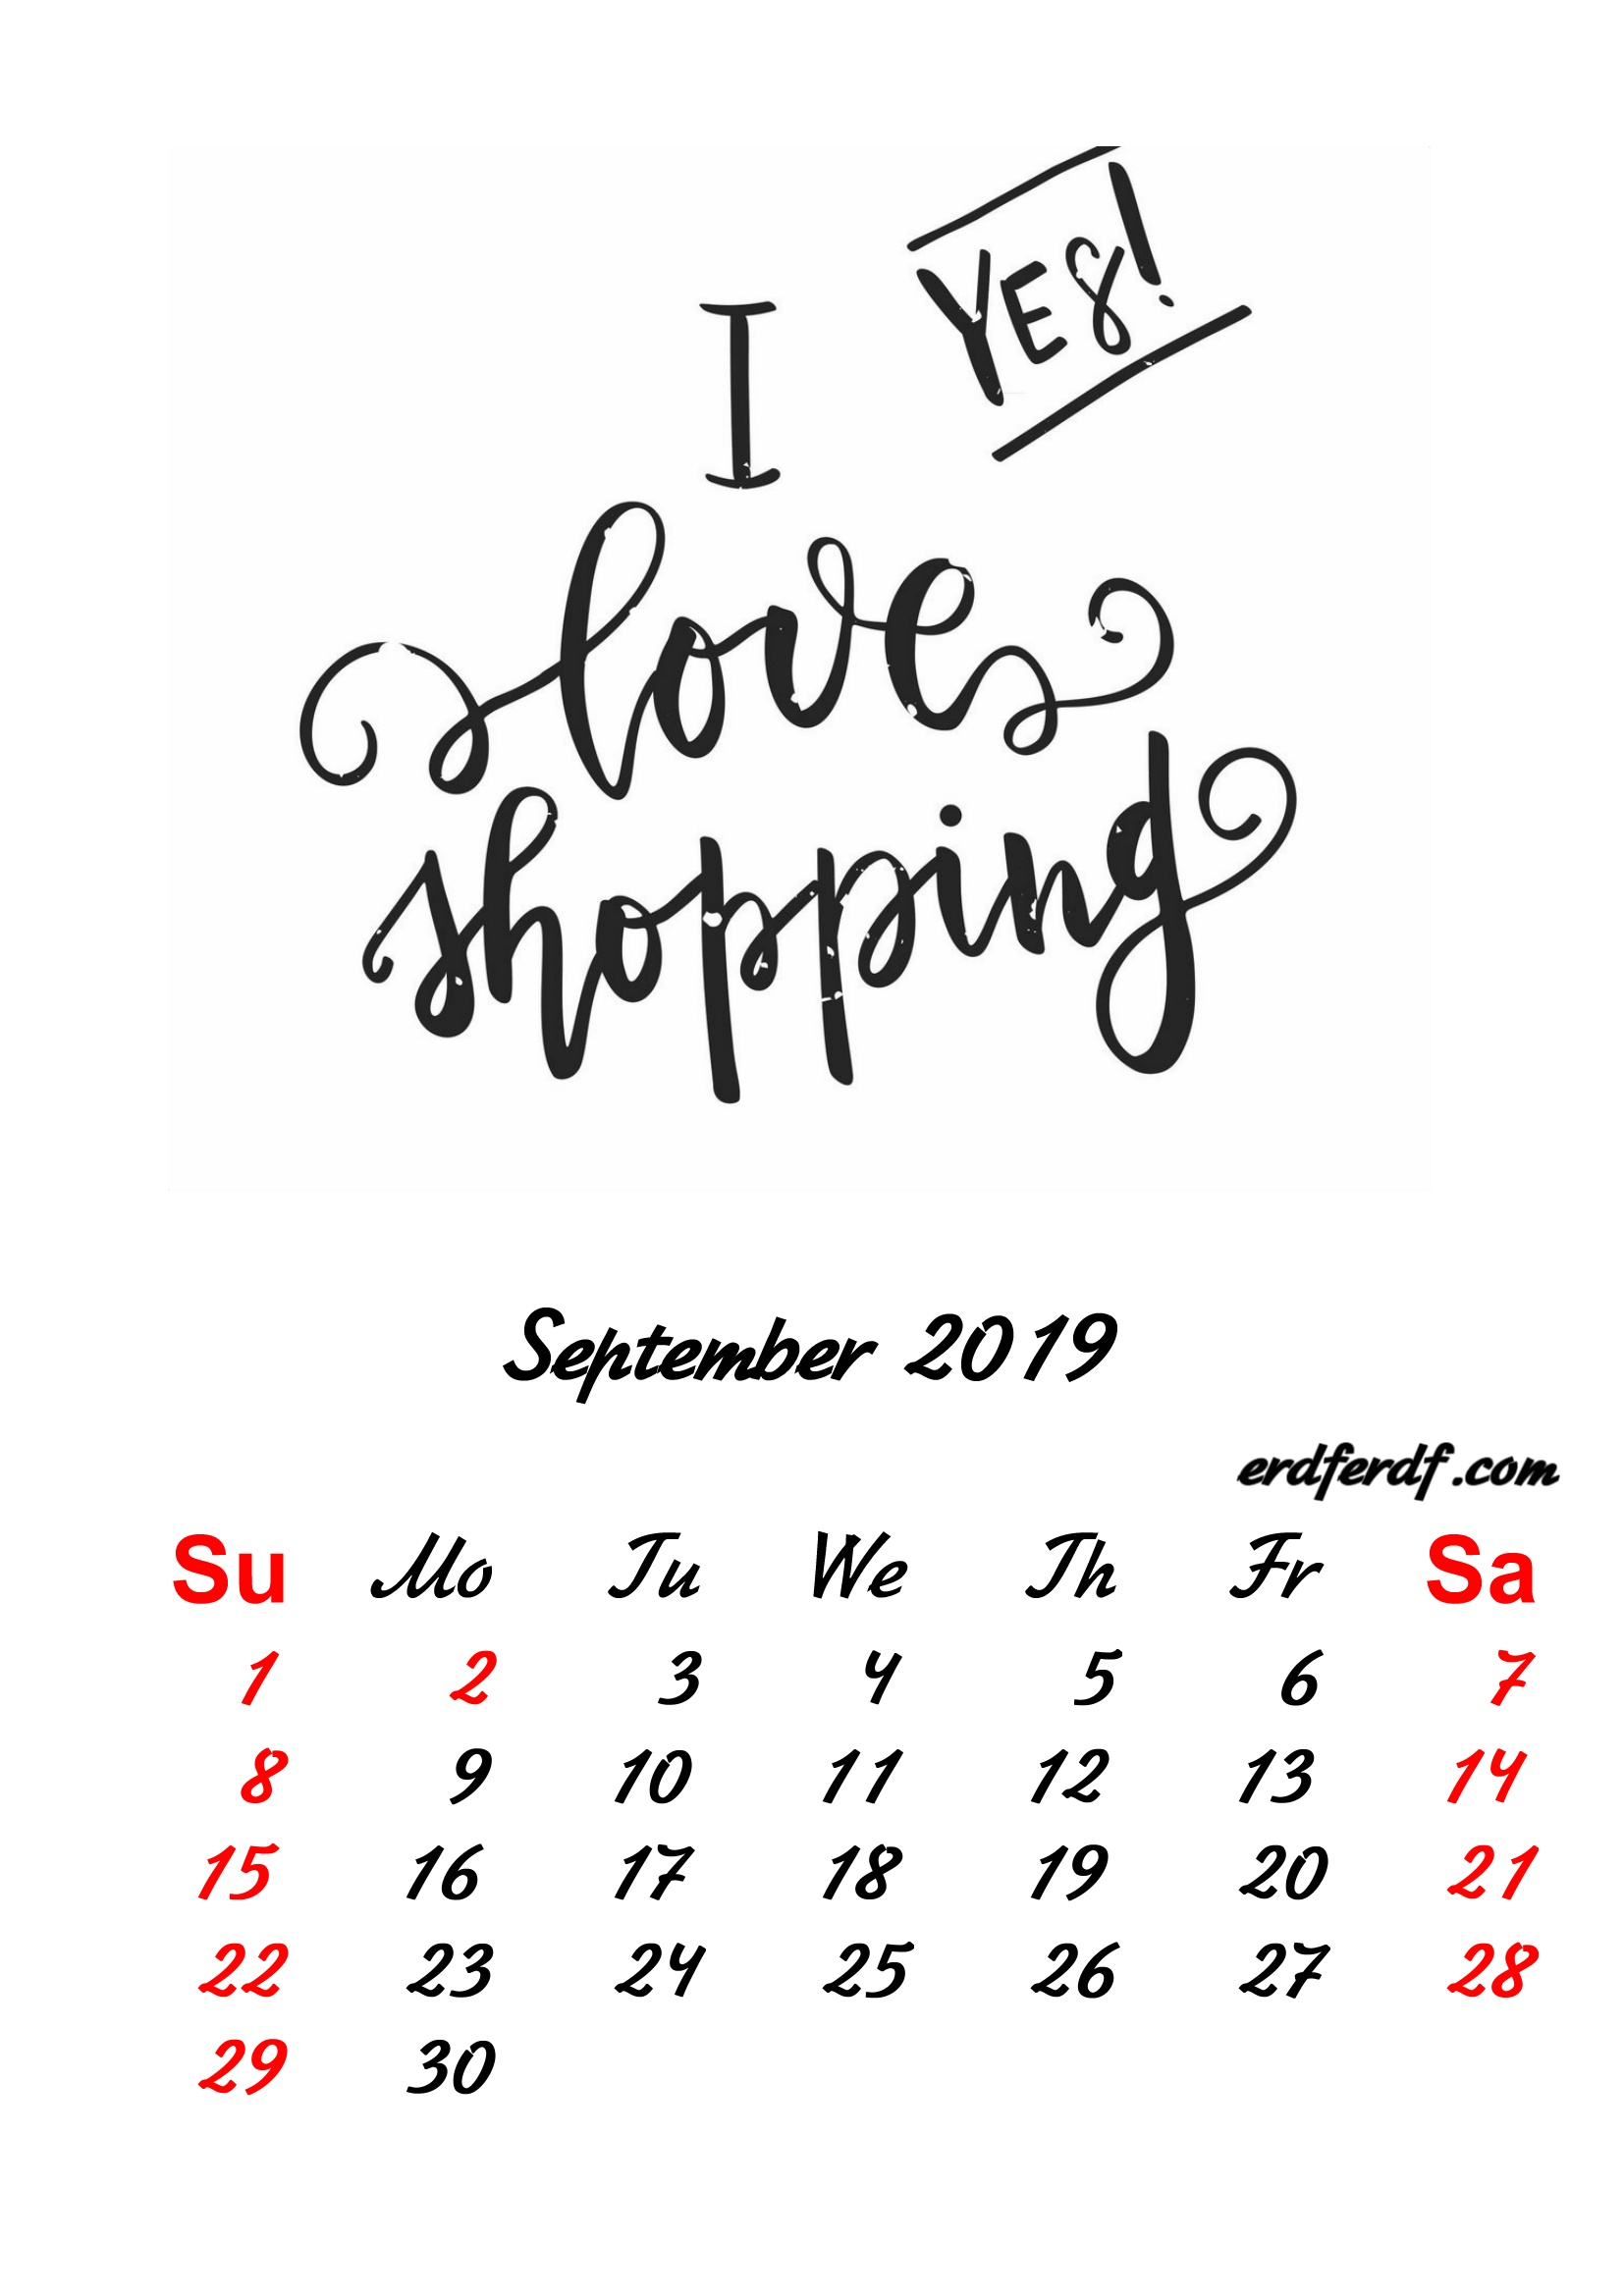 9 September 2019 Inspirational Quotes Pprintable Calendar